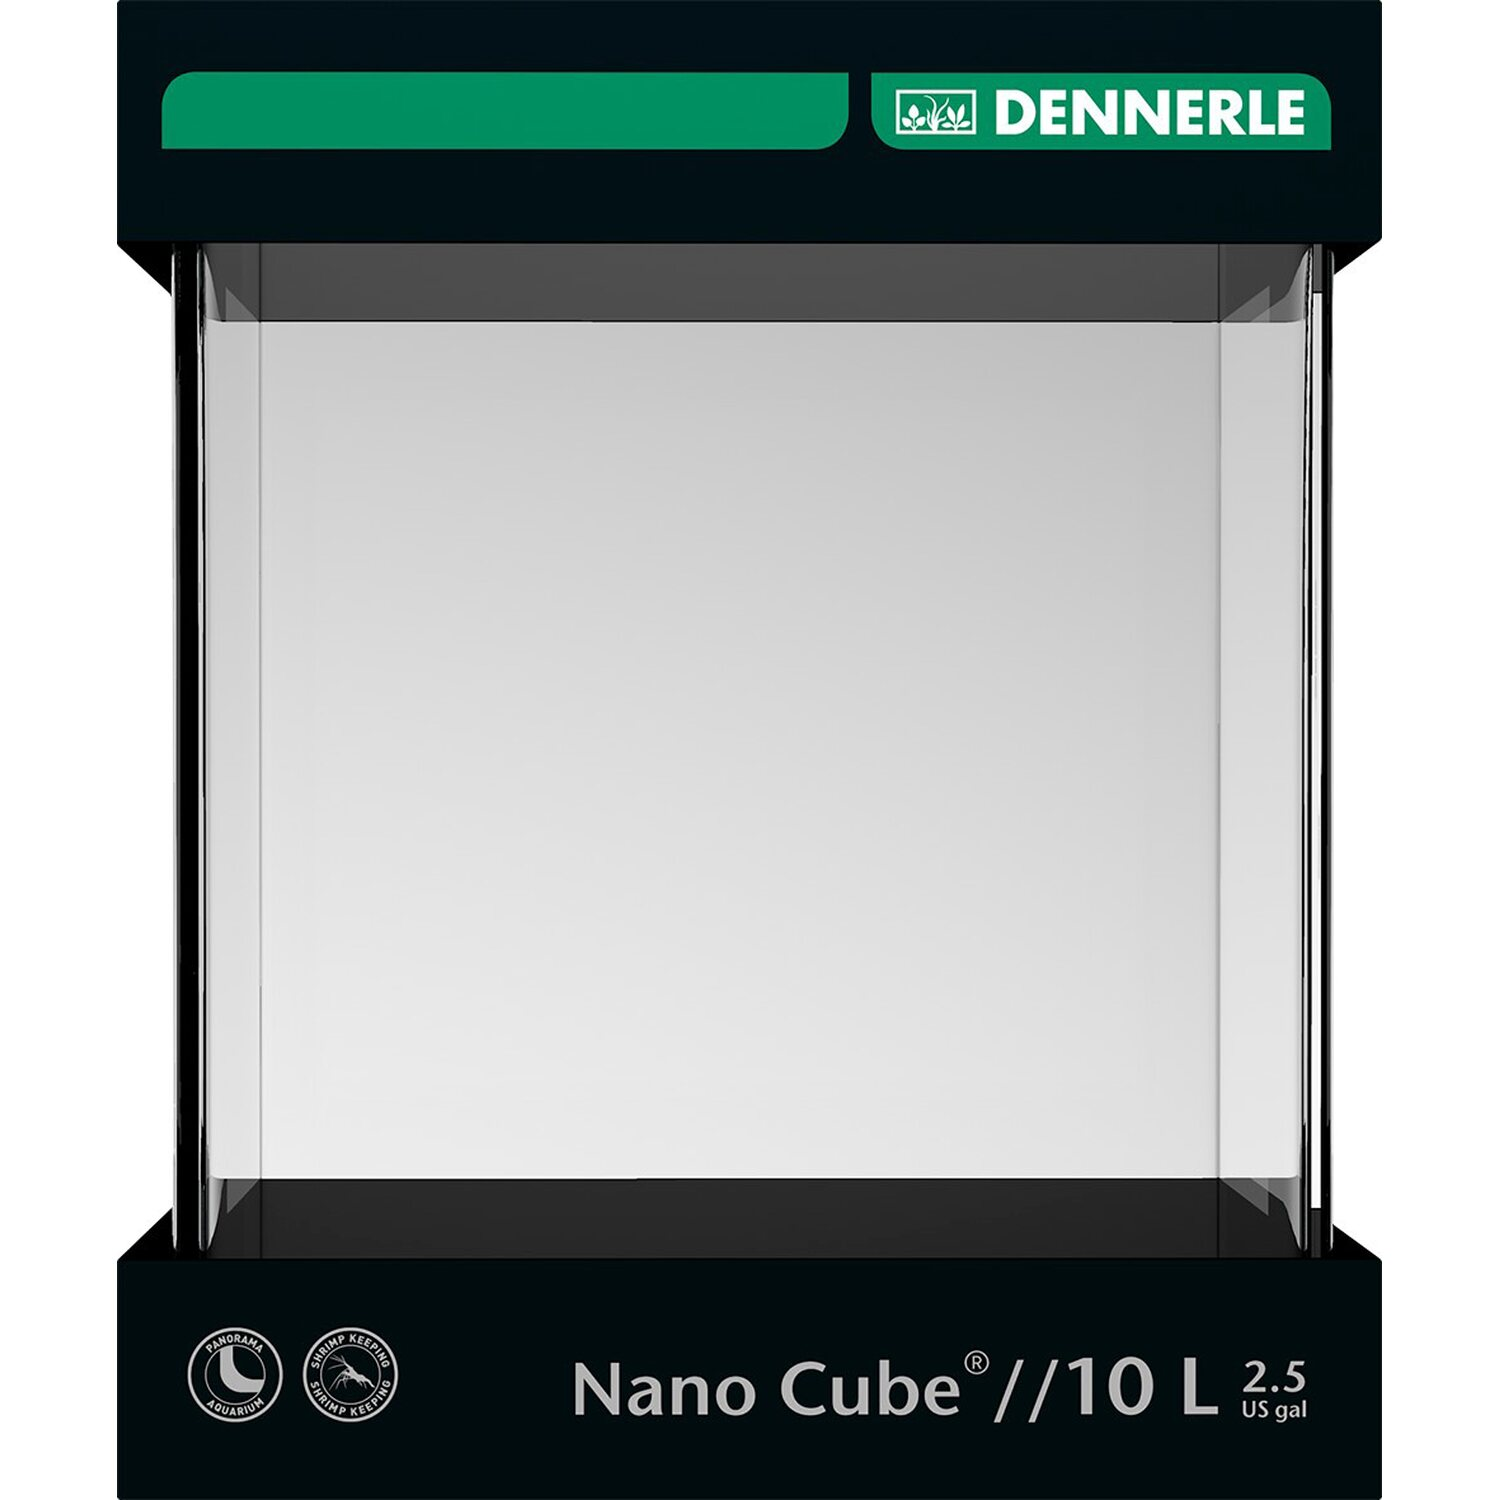 Dennerle Mini-Aquarium Nano Cube® 10 l